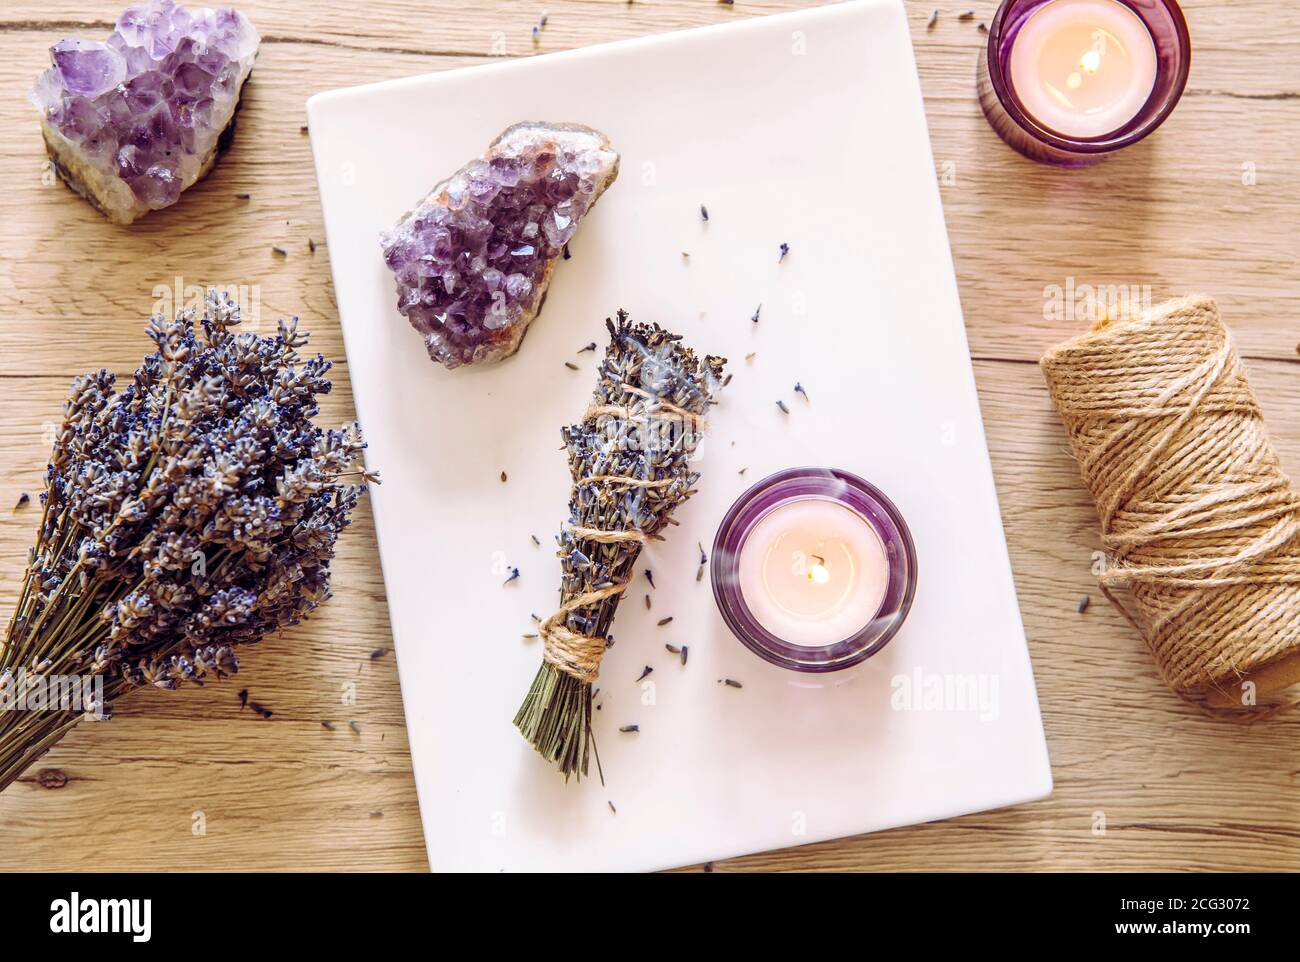 Homemade herbal lavender (lavendula) smudge stick smoldering on white plate with candles and amethyst crystal clusters for decoration. Spiritual home. Stock Photo